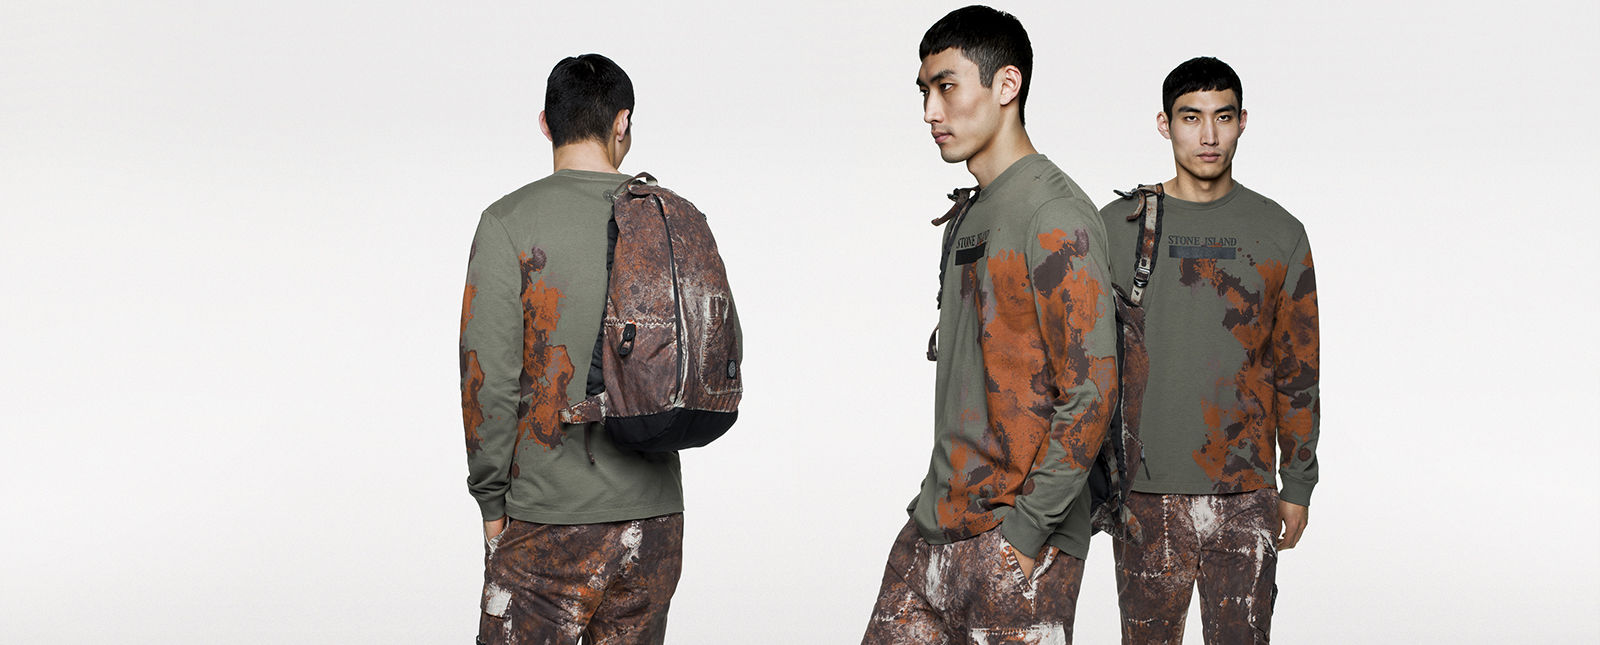 Back, side and front view of model in green, long sleeve T shirt with brown and orange print, carrying a backpack on his shoulder.